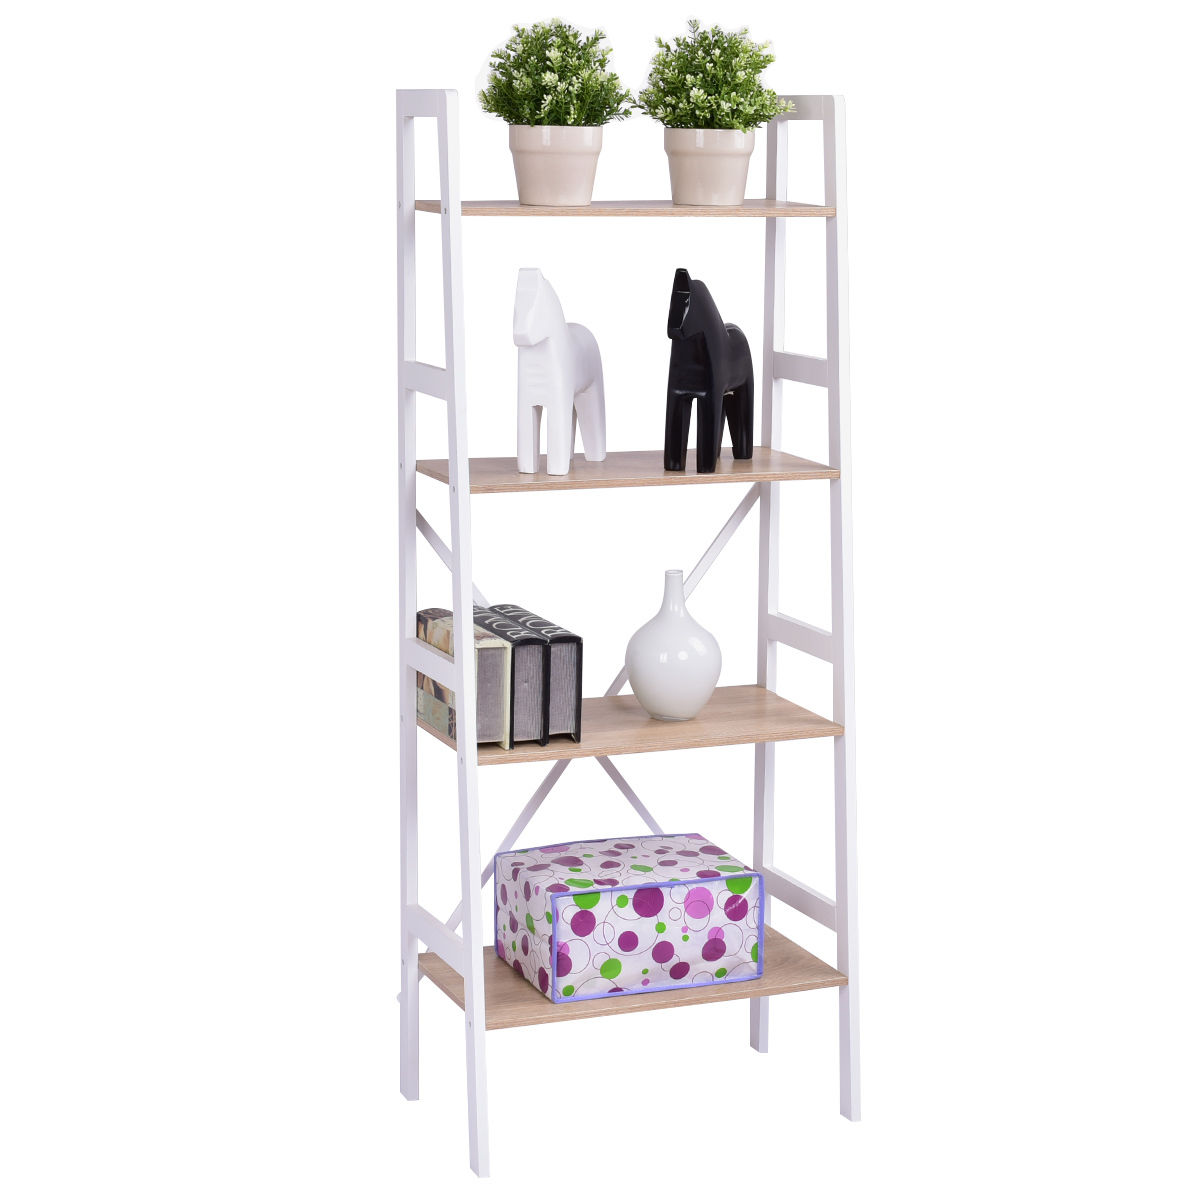 Costway 4 Tier Ladder Wall Stand Display Bookshelf Bookcase Storage Shelves Book Rack